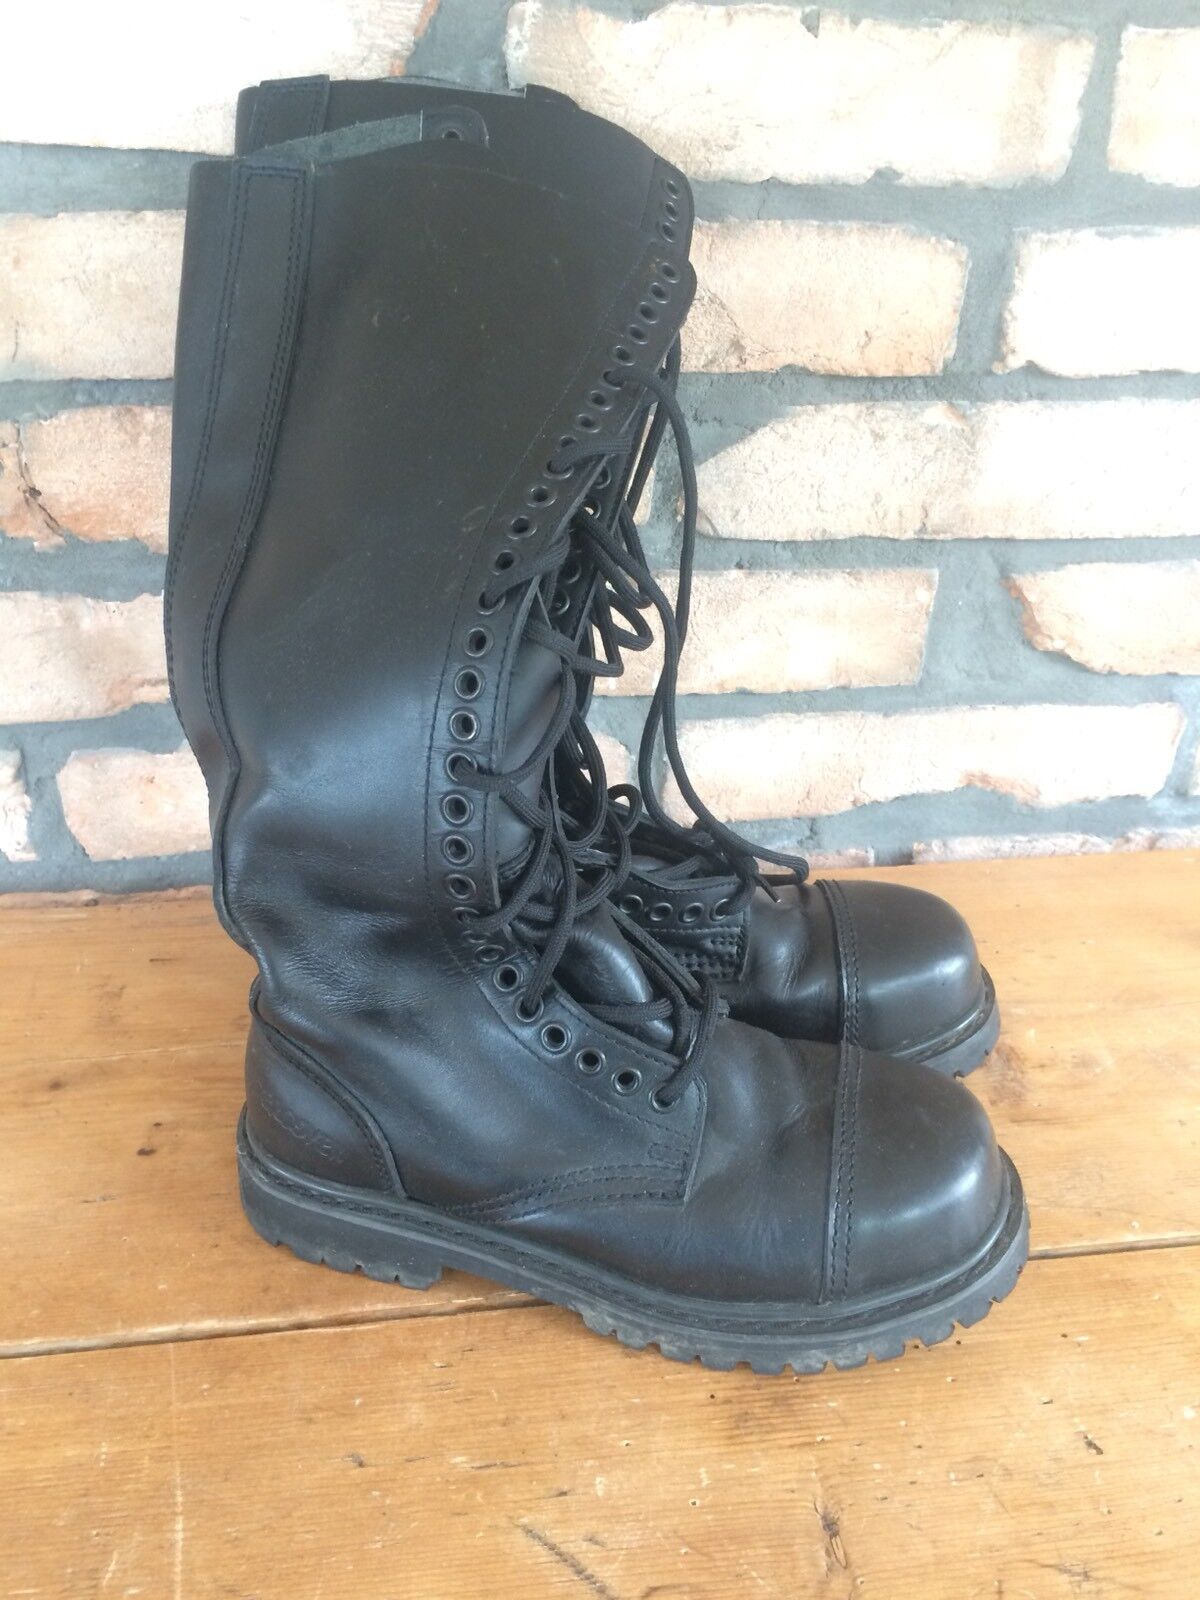 Undercover Boots, Stiefel  30 Loch Gr. 6/ 40 Leder, Gothic, Cosplay, Festival!